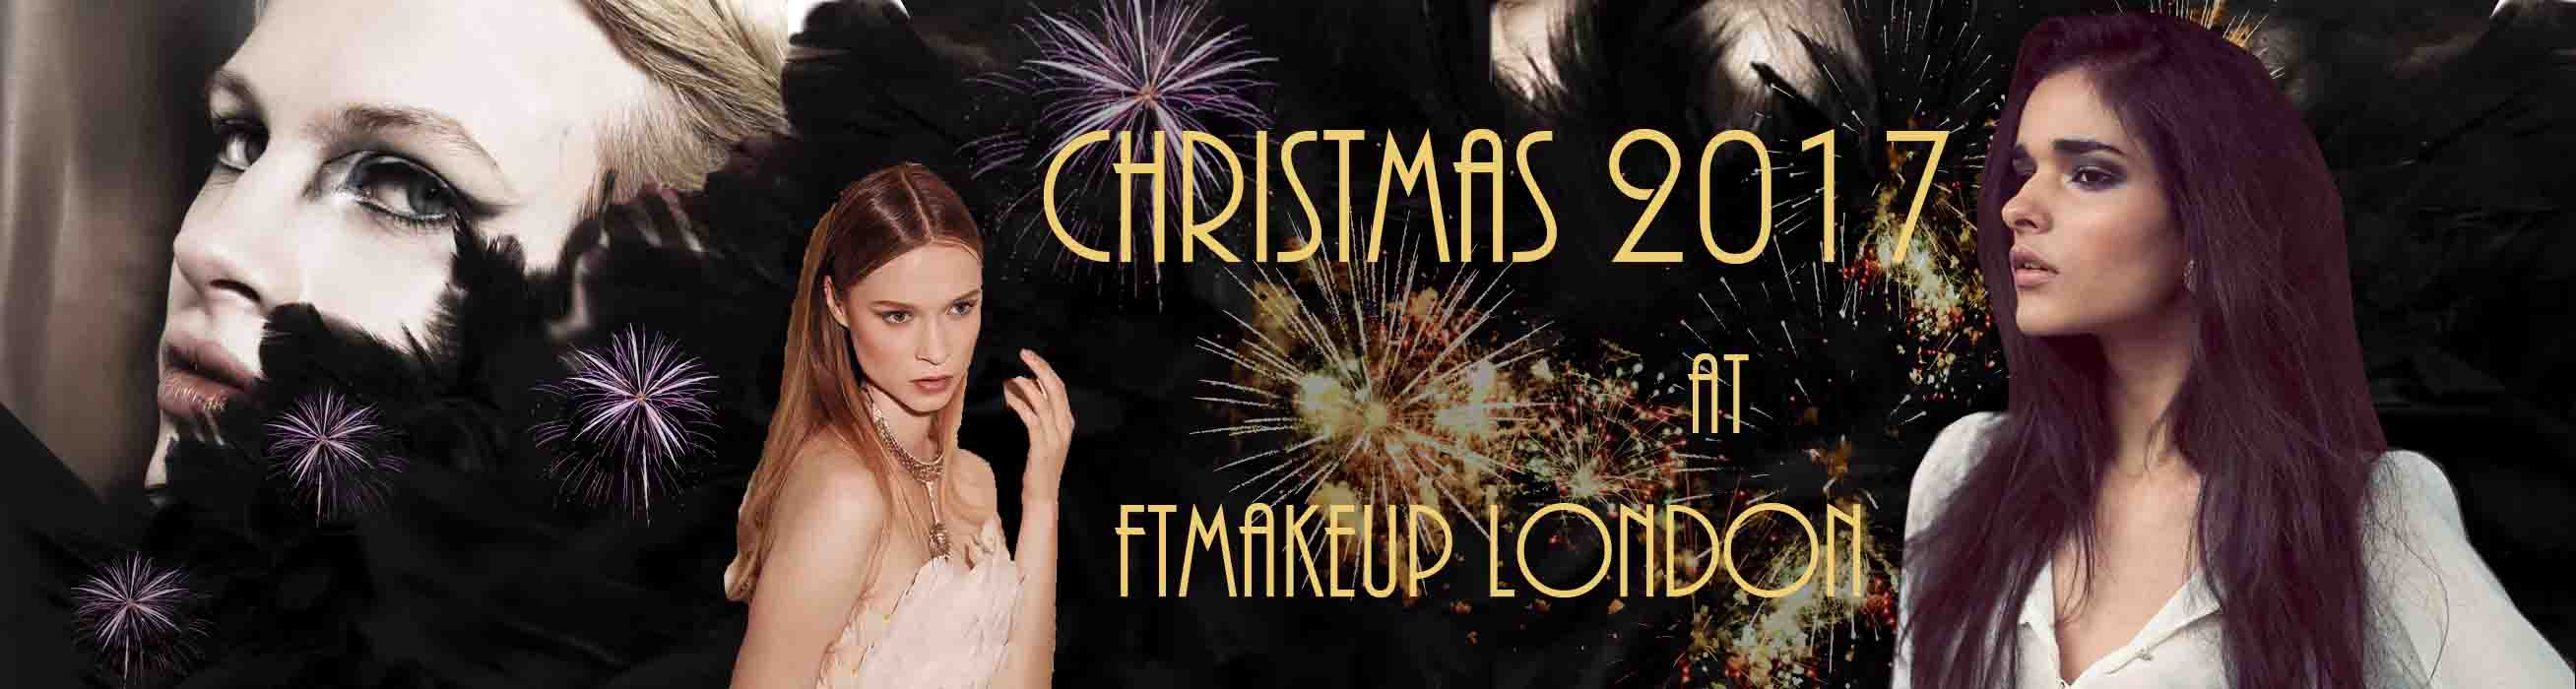 CHRISTMAS 2017 Makeup & Hair by Fiona Tanner